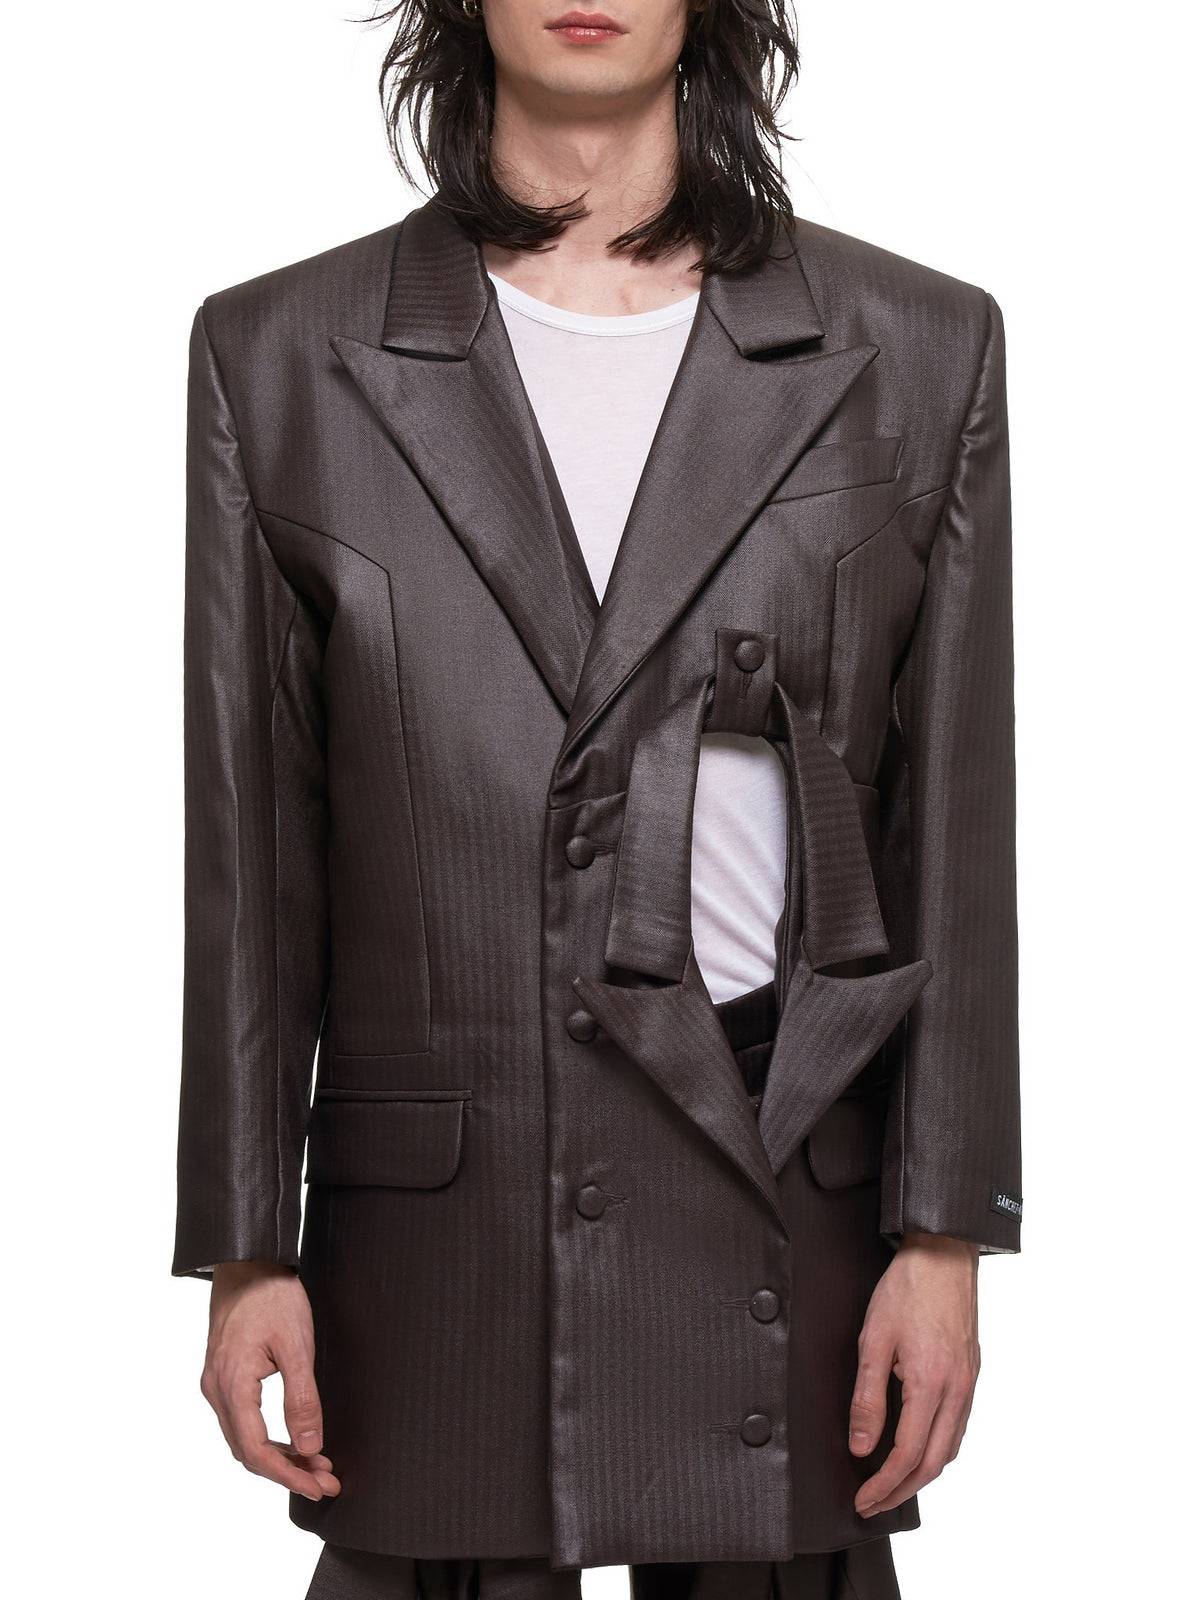 Grow-Up Blazer (GROW-UP-05-D-01-BROWN)